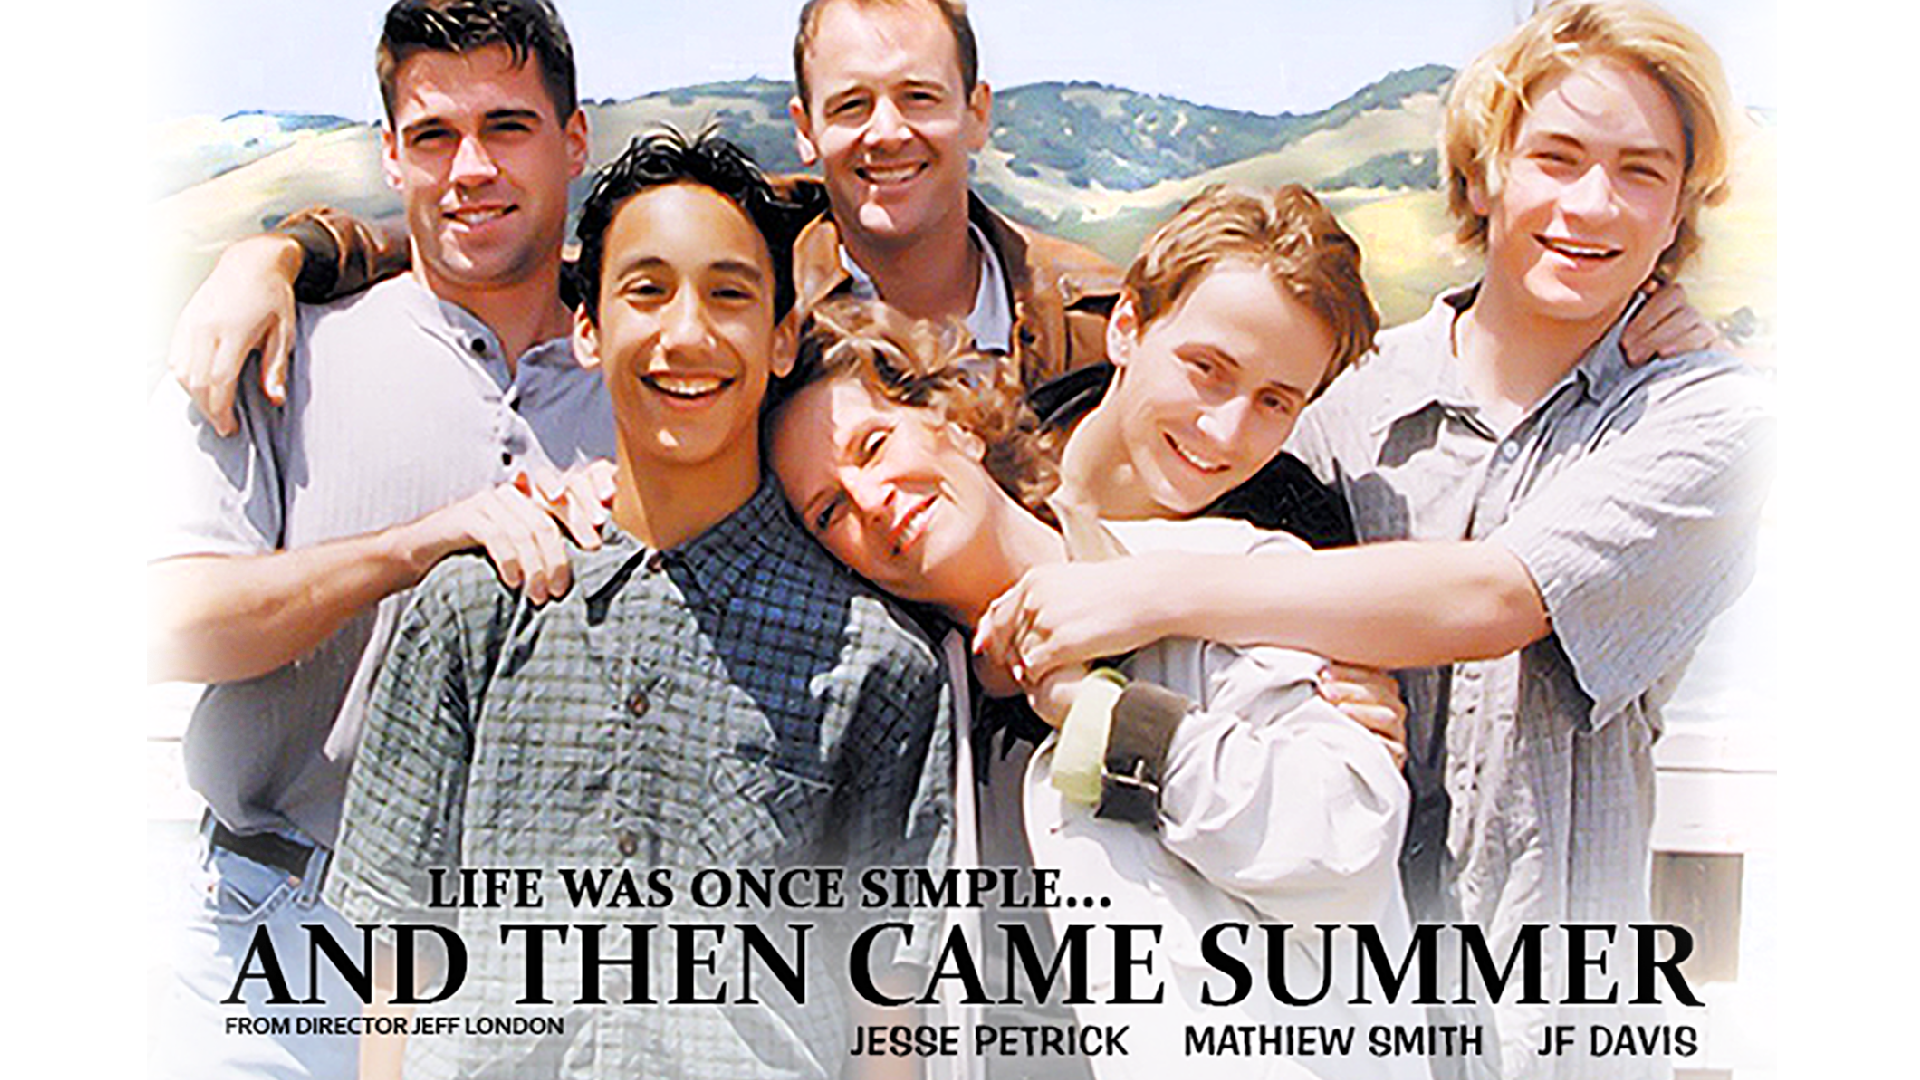 And Then Came Summer